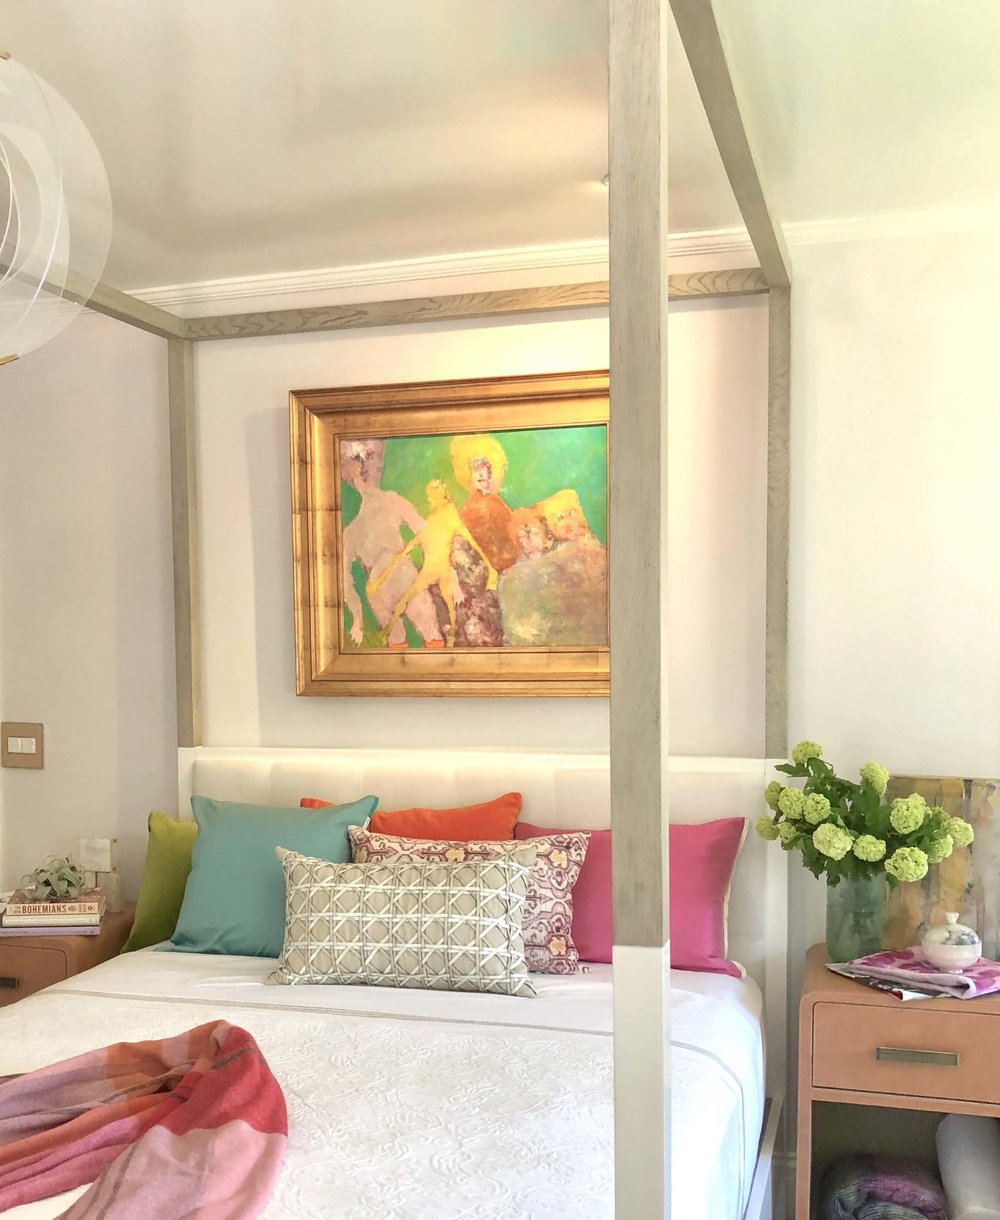 Teen girl bedroom designed by Jeanne K. Chung, in pinks and pastels with four poster bed, Pasadena Showcase House